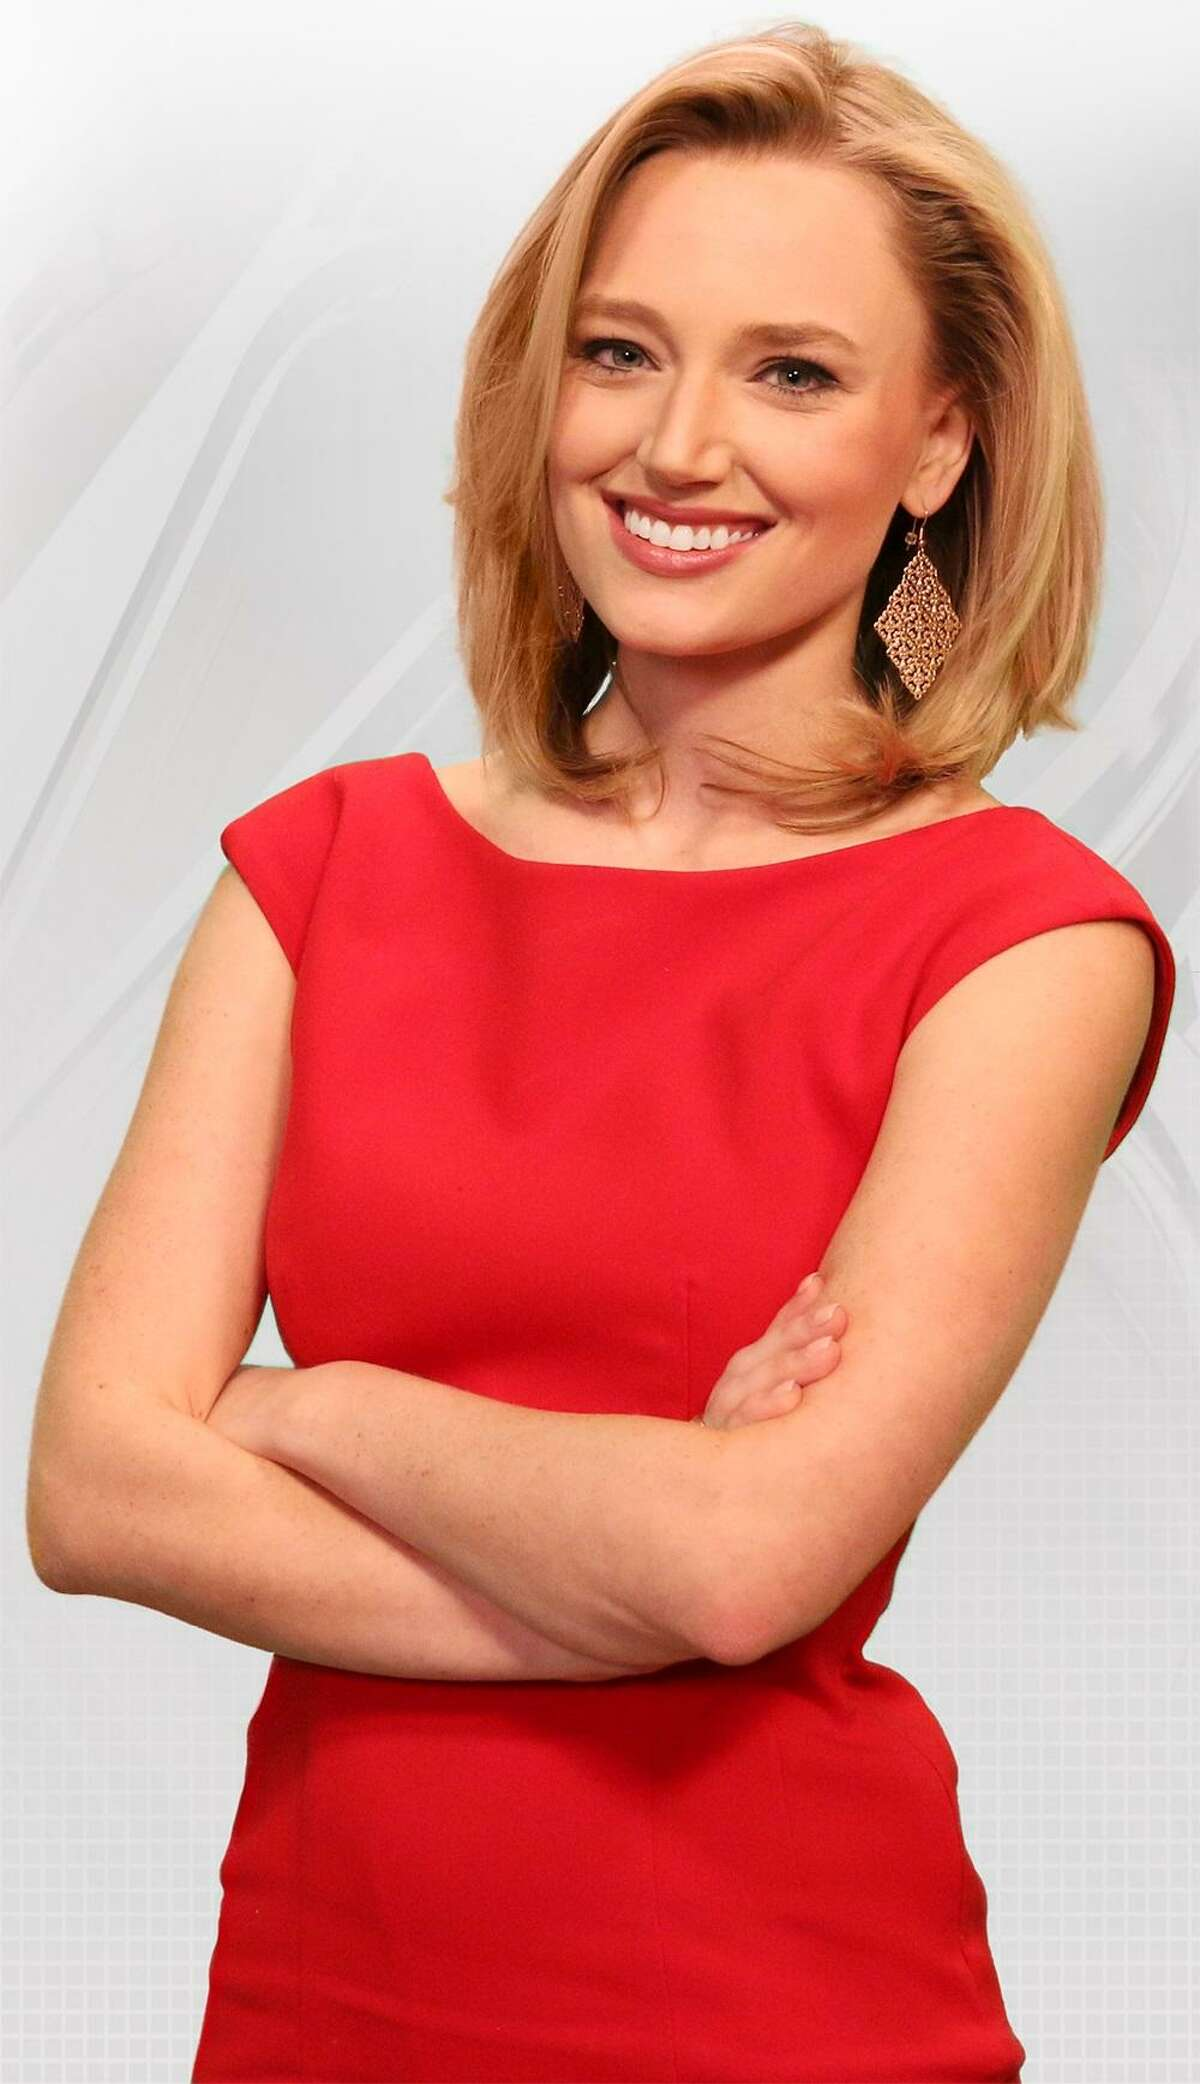 Clark High grad and degreed meteorologist Sarah Spivey joined KSAT's weekend morning team in 2017.